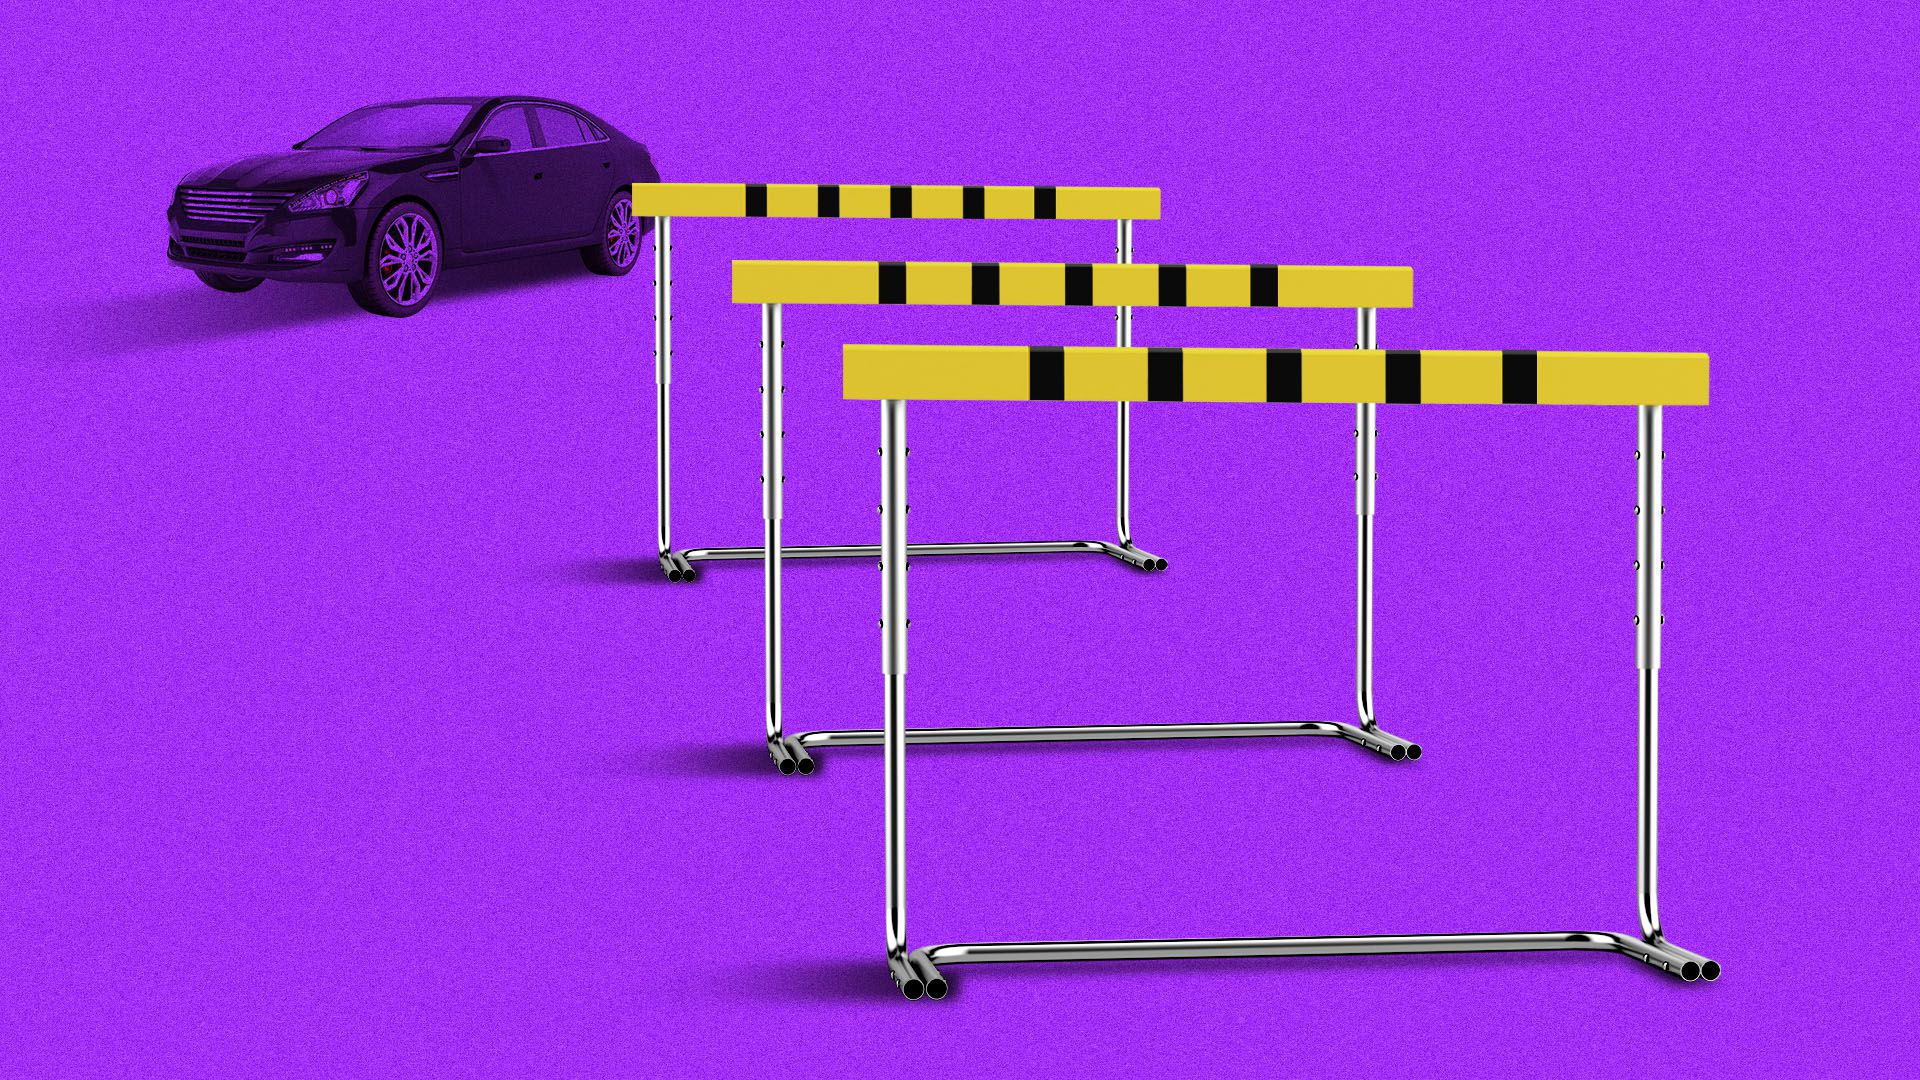 Illustration of car facing three hurdles